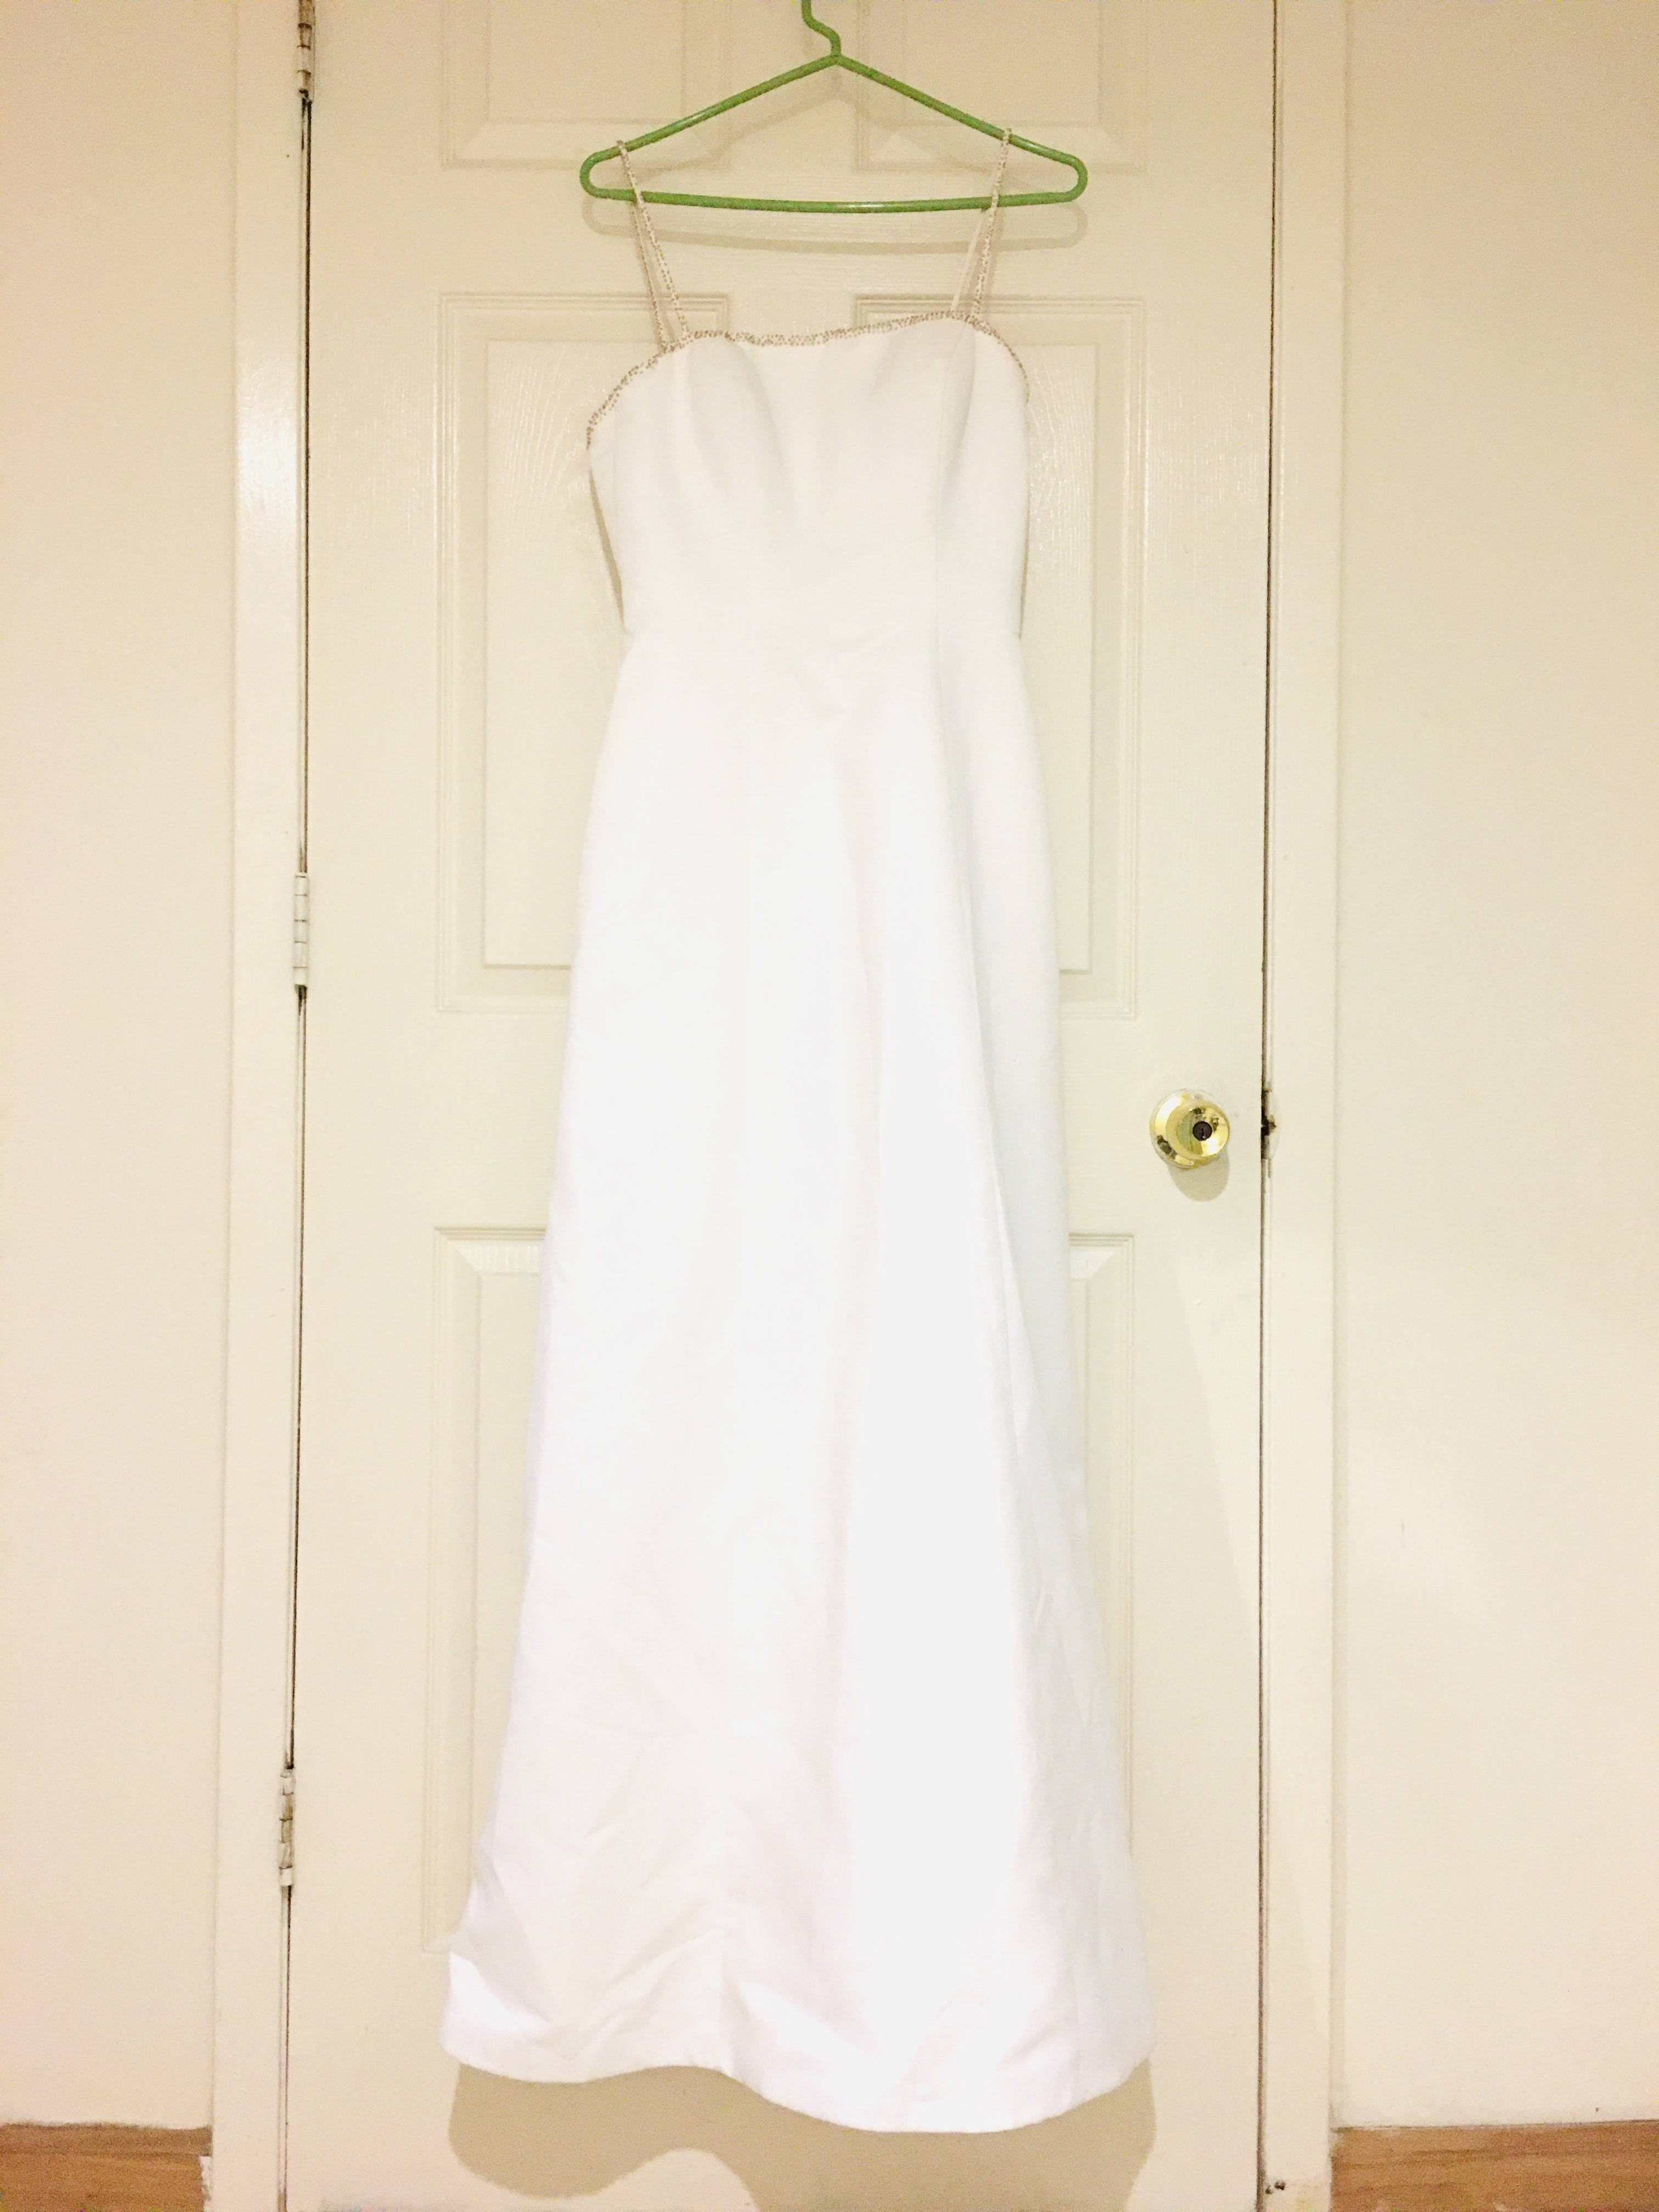 David's bridal - CT003 size 8 - $250 - (75% OFF)